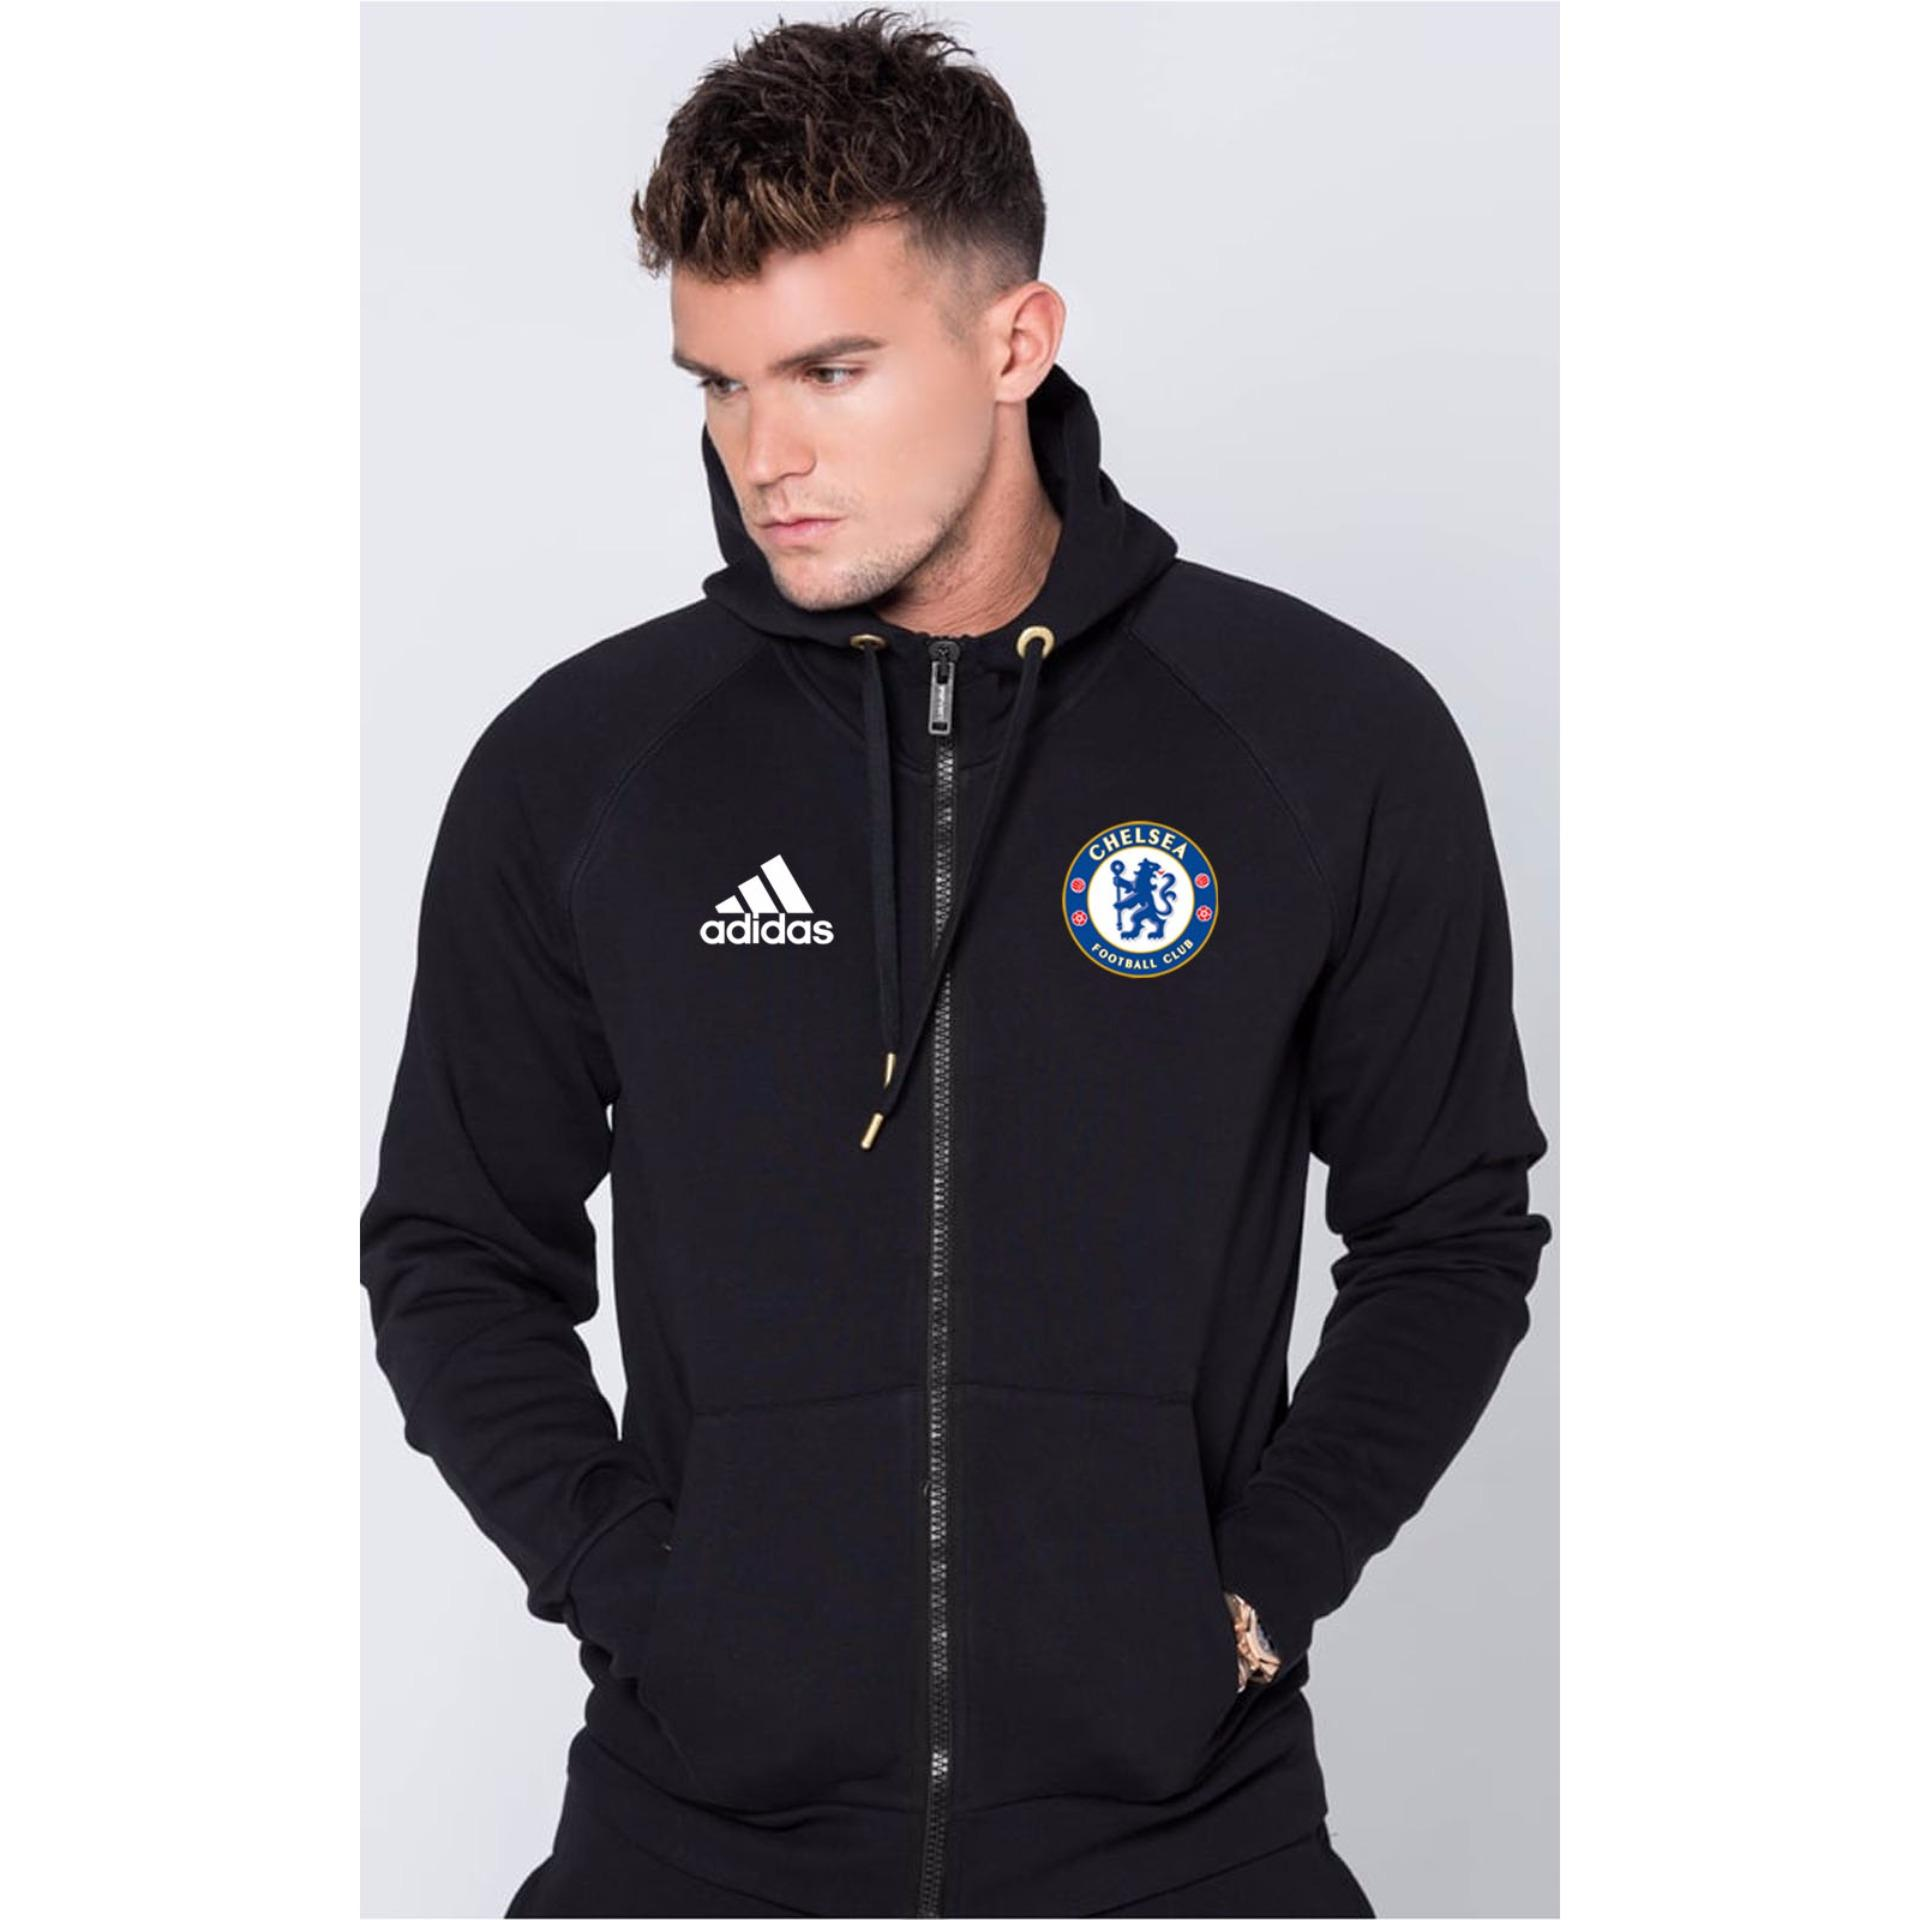 Beli Just Cloth Jaket Zipper The Blues Chelsea Hitam Yang Bagus